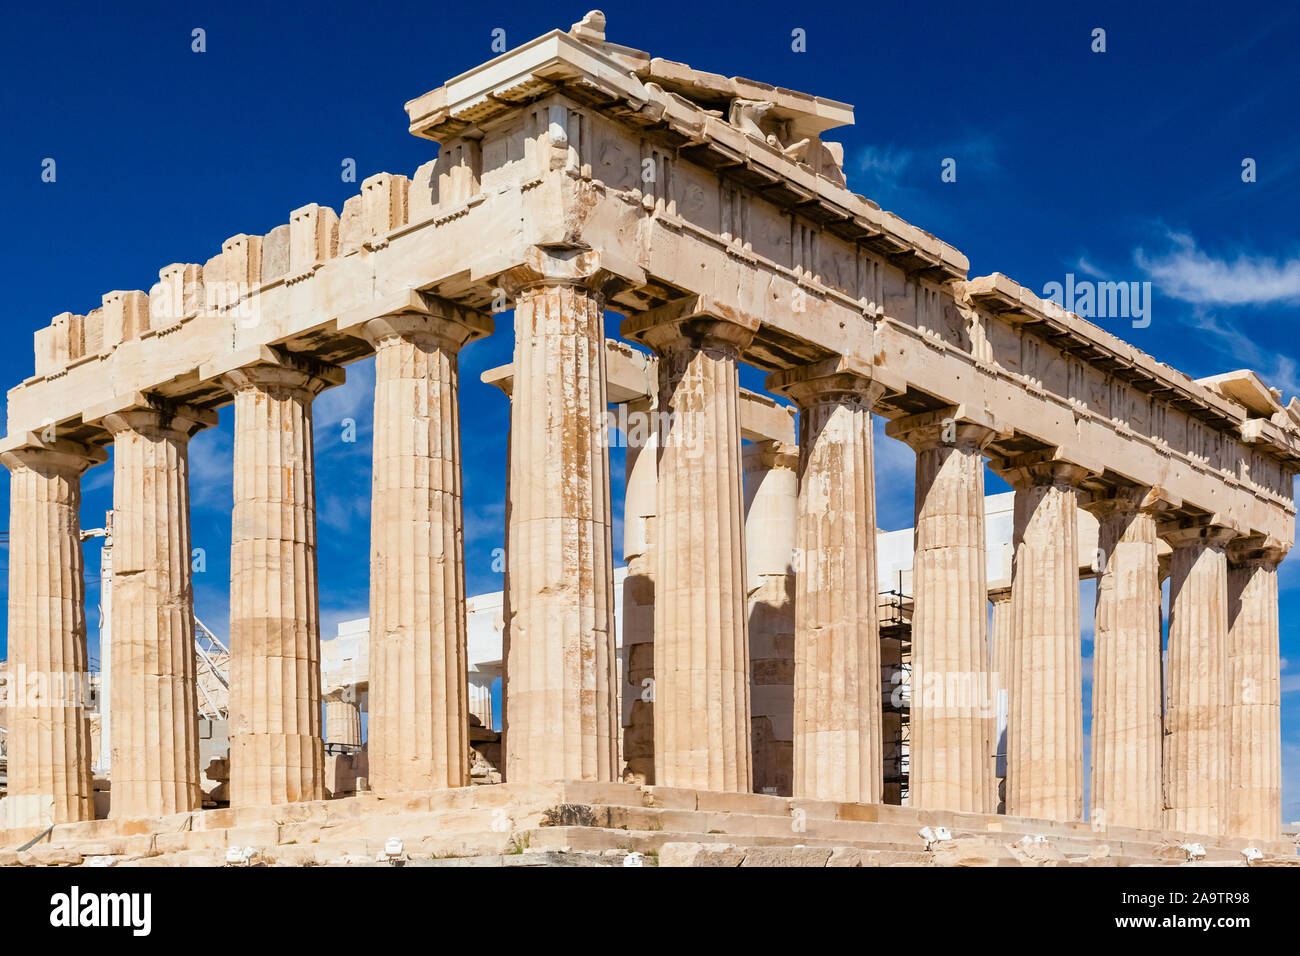 Griechenland, Athen, Akropolis Stock Photo